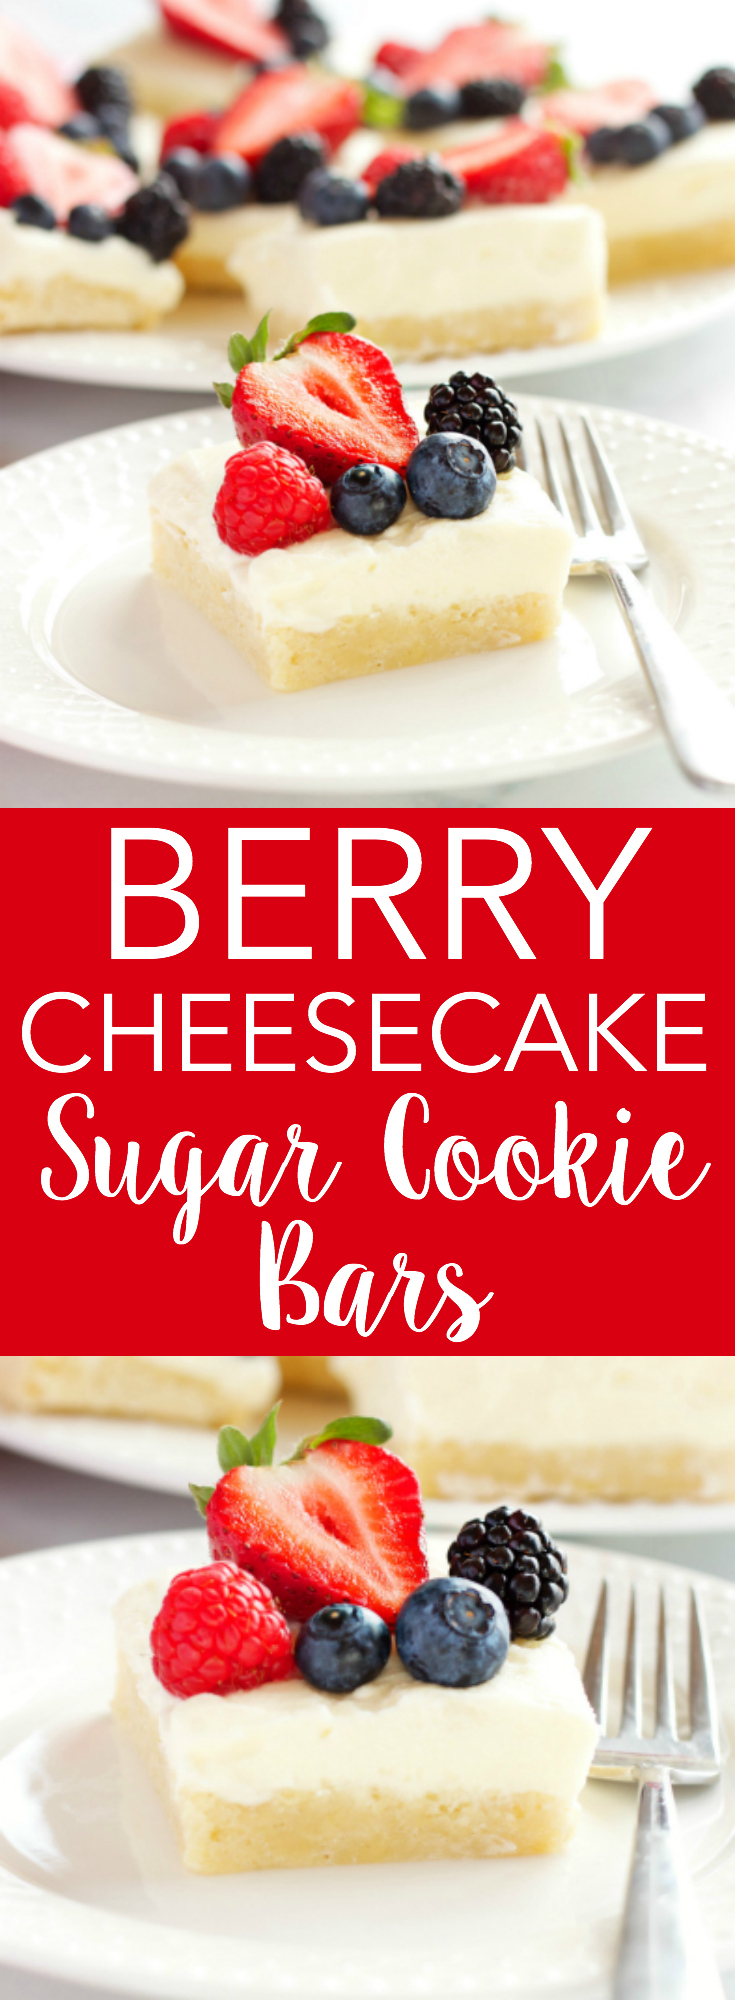 These Berry Cheesecake Sugar Cookie Bars make the perfect dessert for spring and summer featuring a cookie base, creamy cheesecake and fresh berries! Recipe from thebusybaker.ca! via @busybakerblog